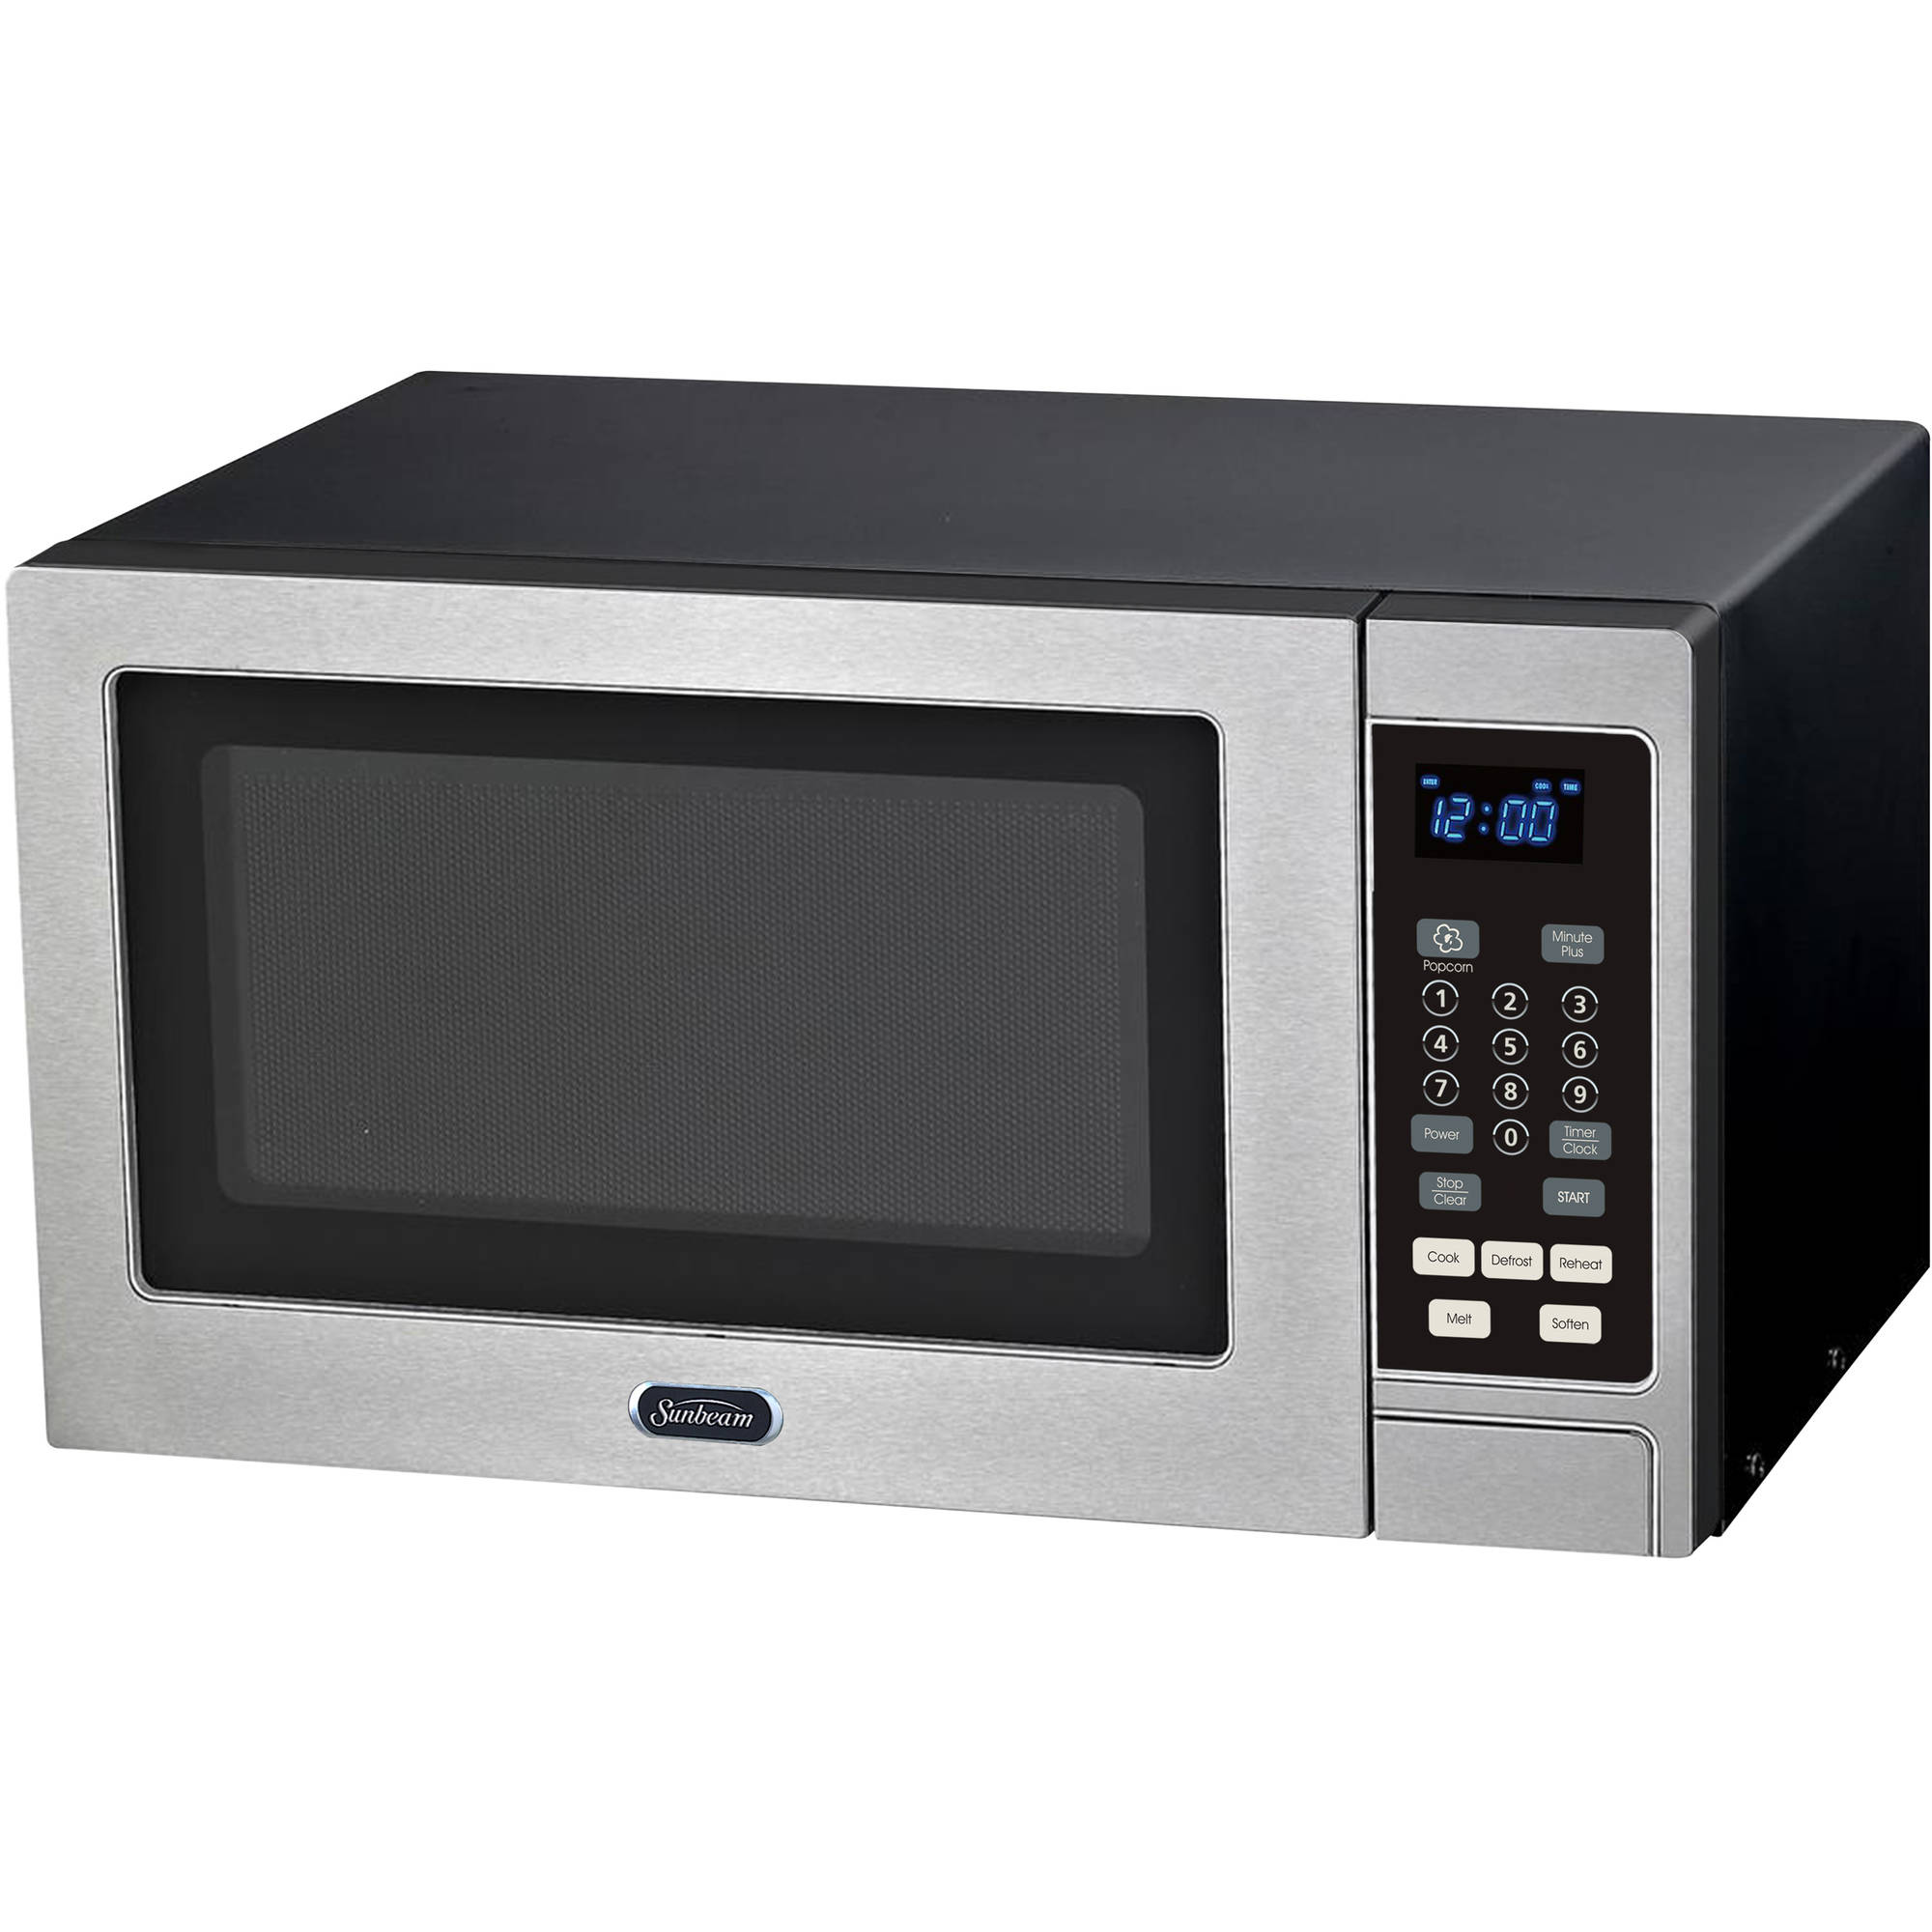 This Sunbeam compact countertop microwave oven is the perfect addition to your kitchen, entertainment space or dorm room. This unit includes 6 pre-set menus, including baked potato, beverage, popcorn, pizza, frozen dinner and reheat.